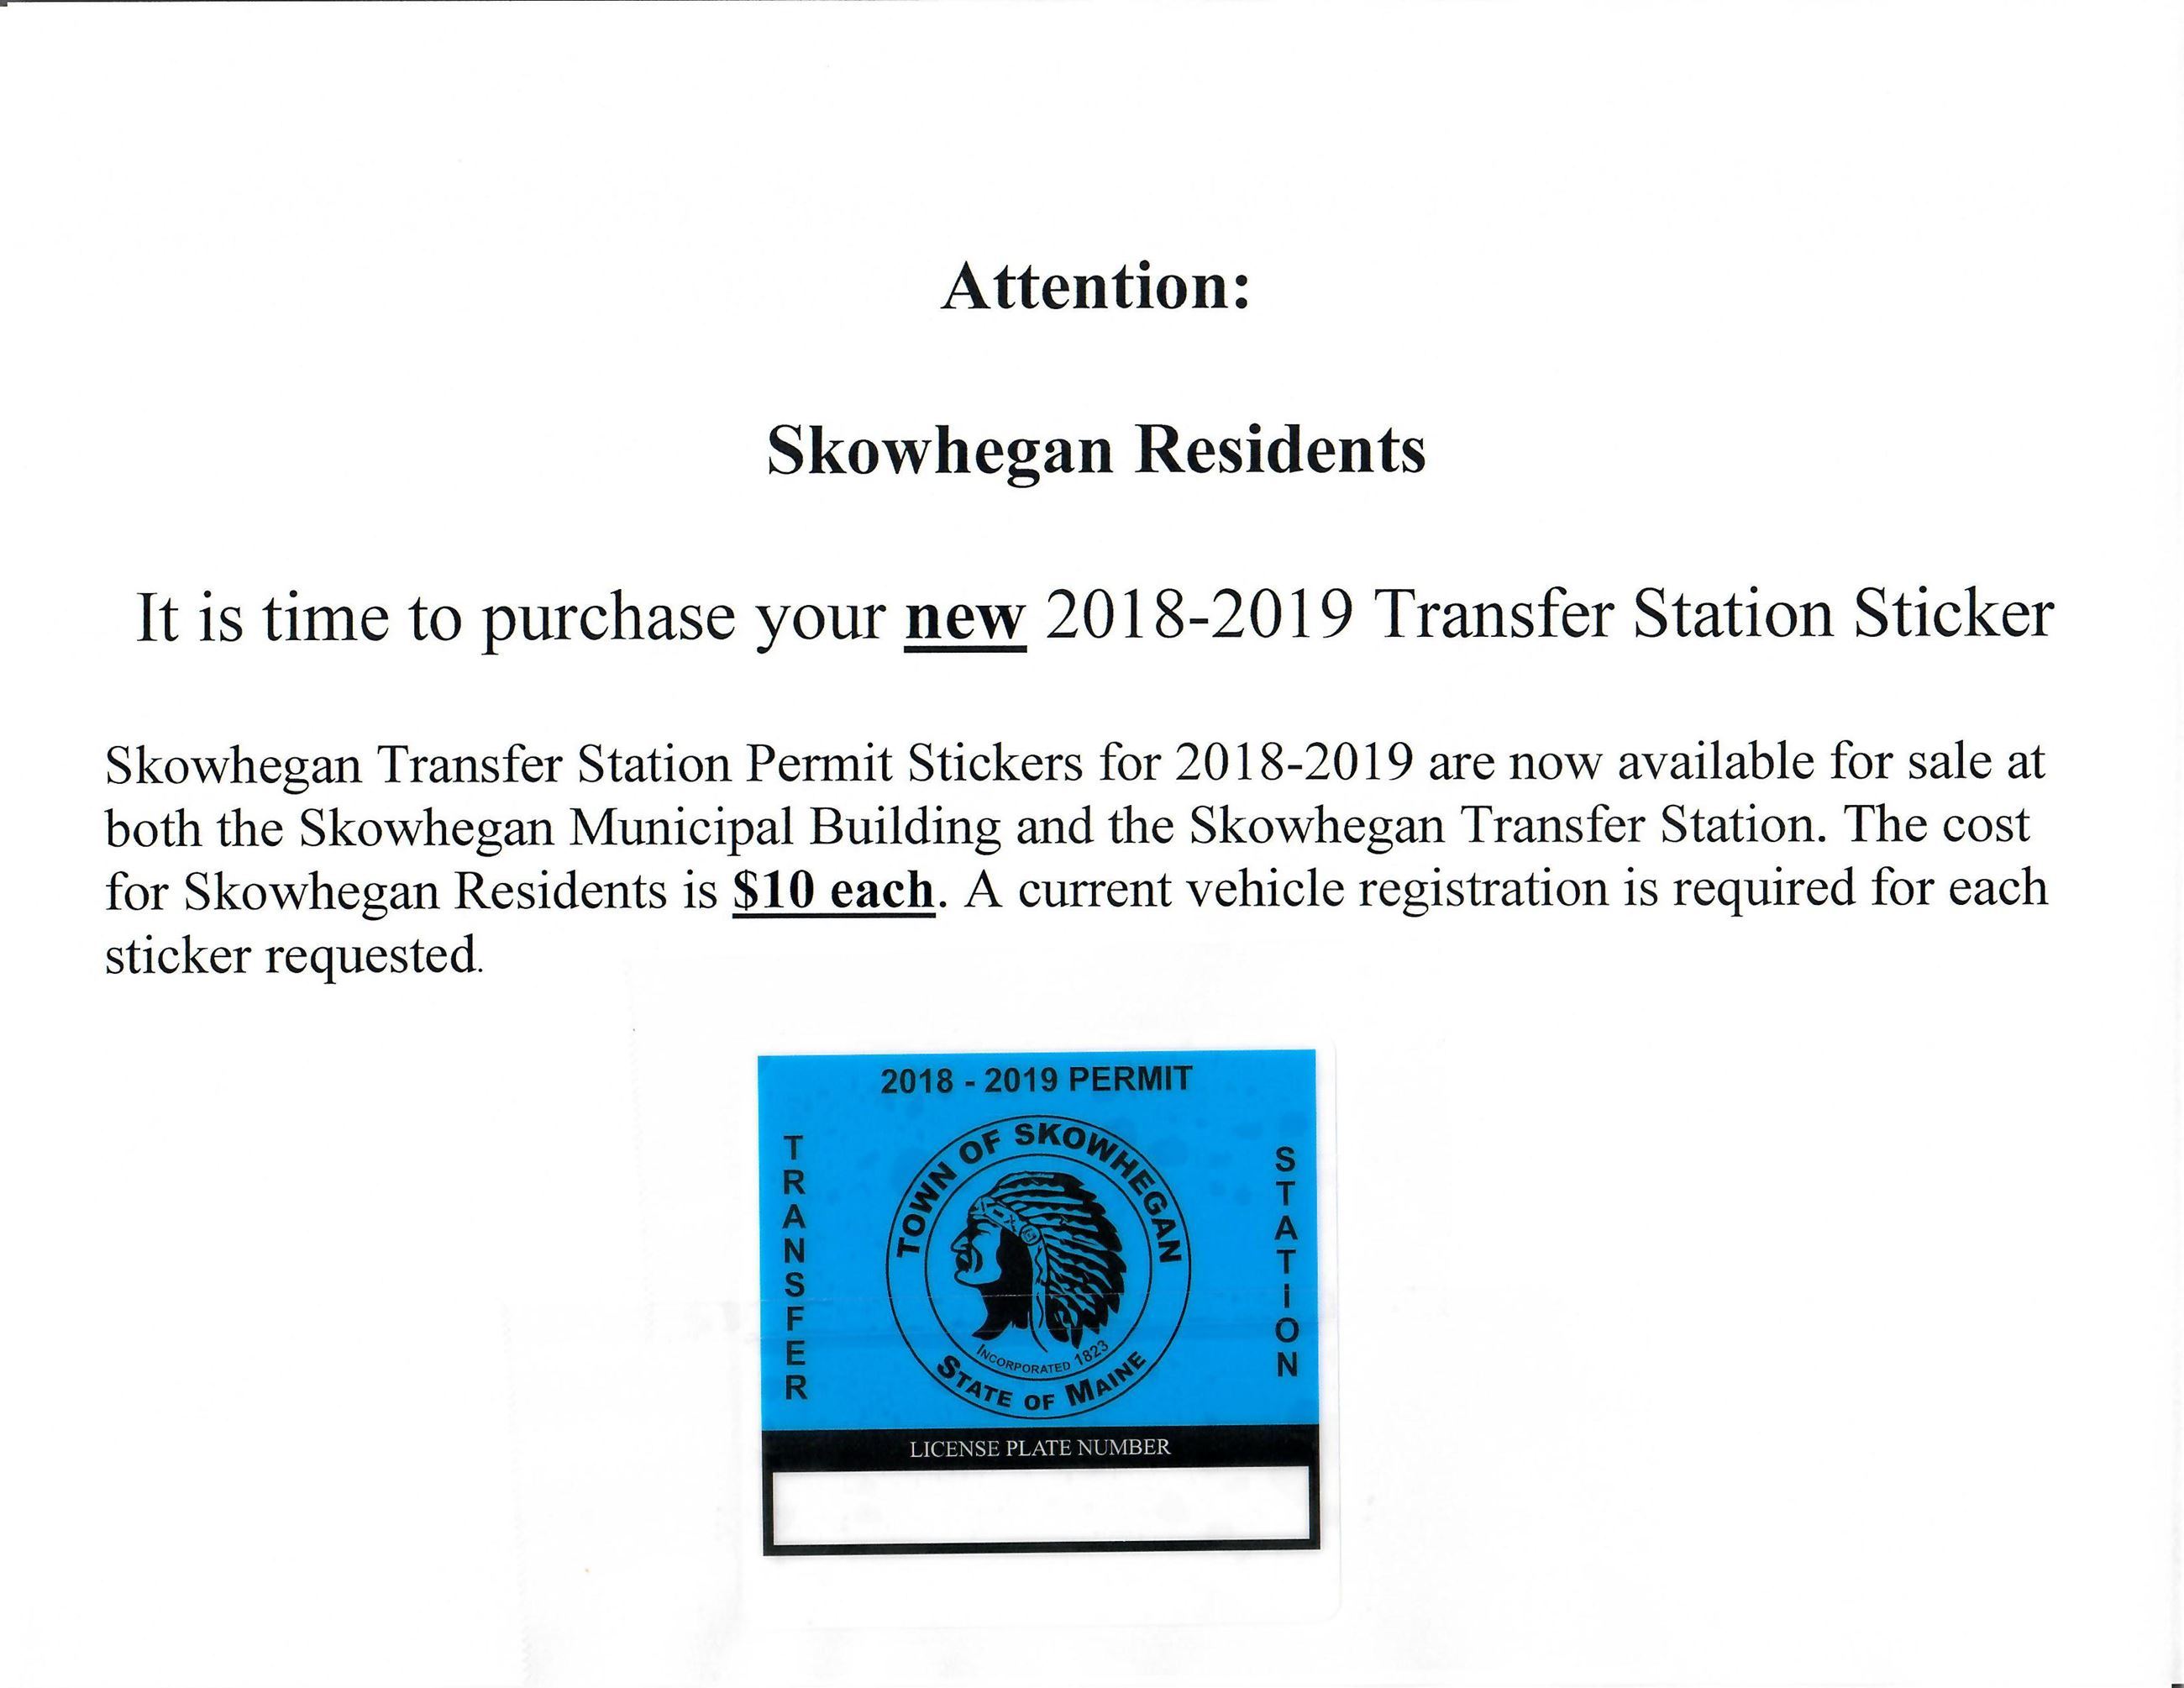 2018-2019 Transfer Station Stickers